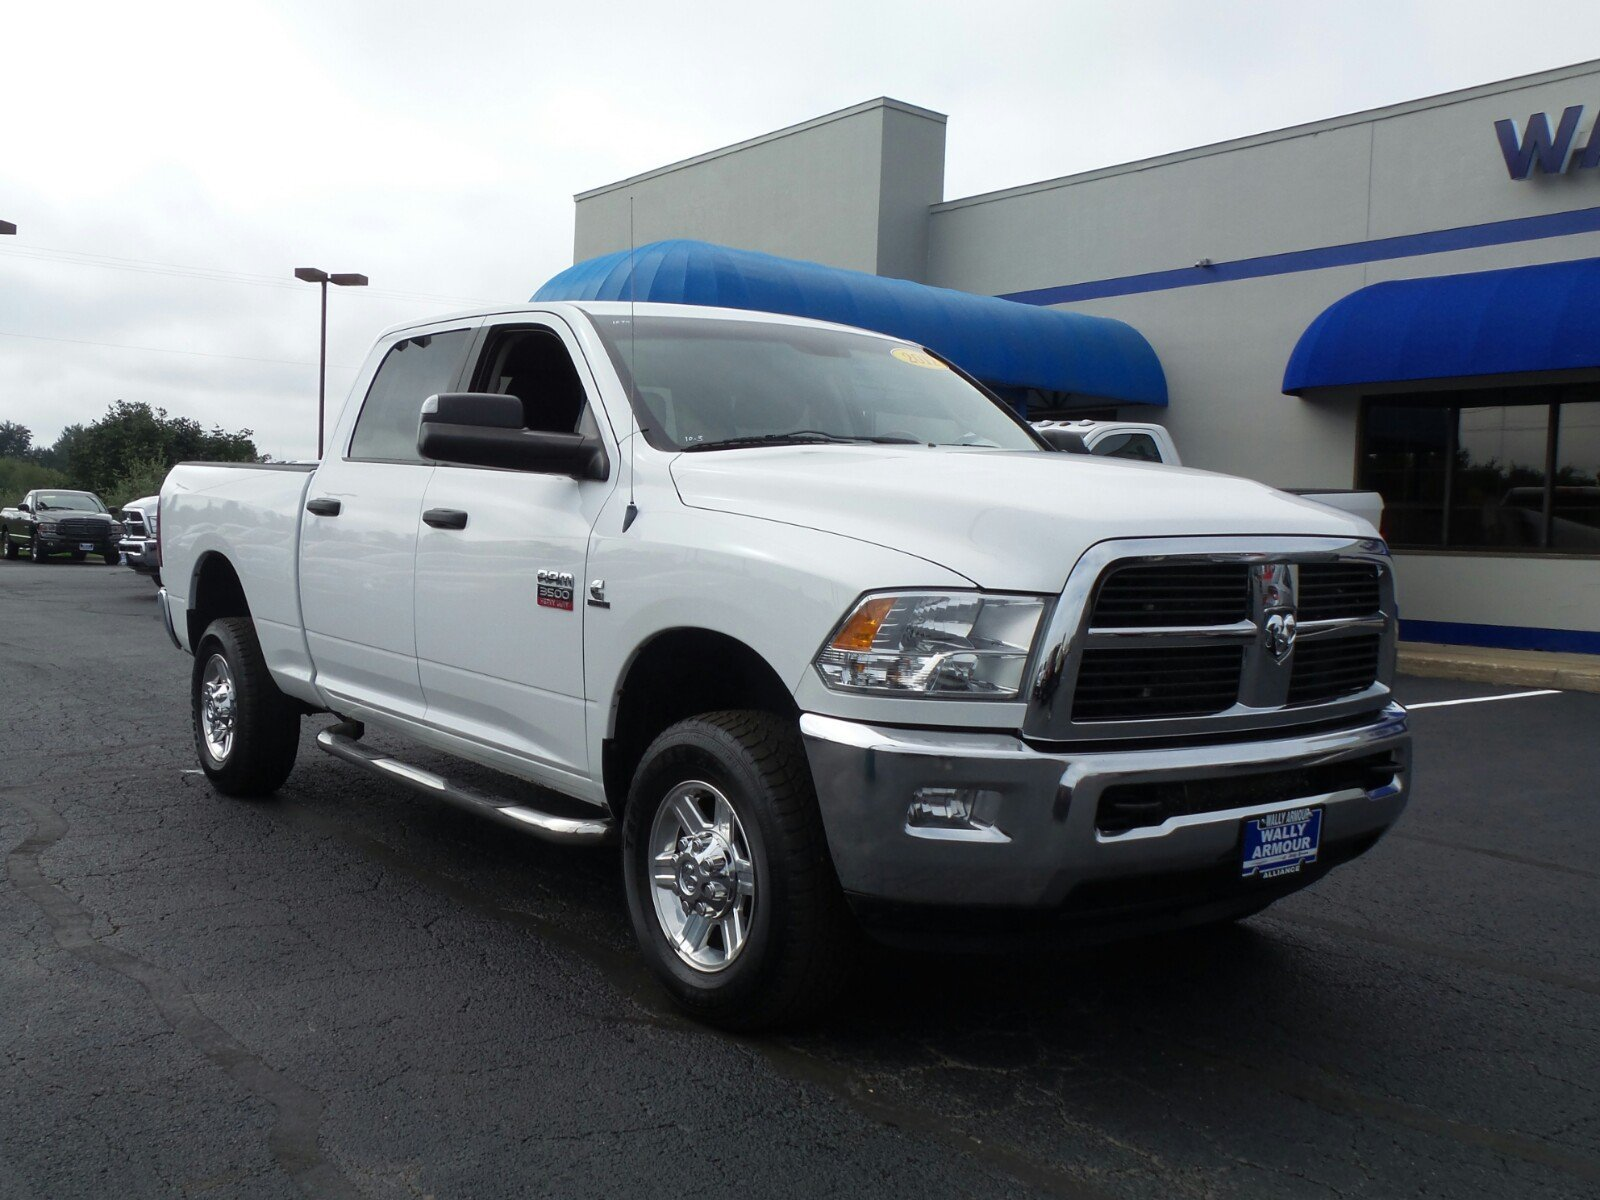 Pre Owned 2012 Ram 3500 Slt Crew Cab Pickup In Alliance 52614a 0 Dodge Dakota Custom Fit Vehicle Wiring Tow Ready